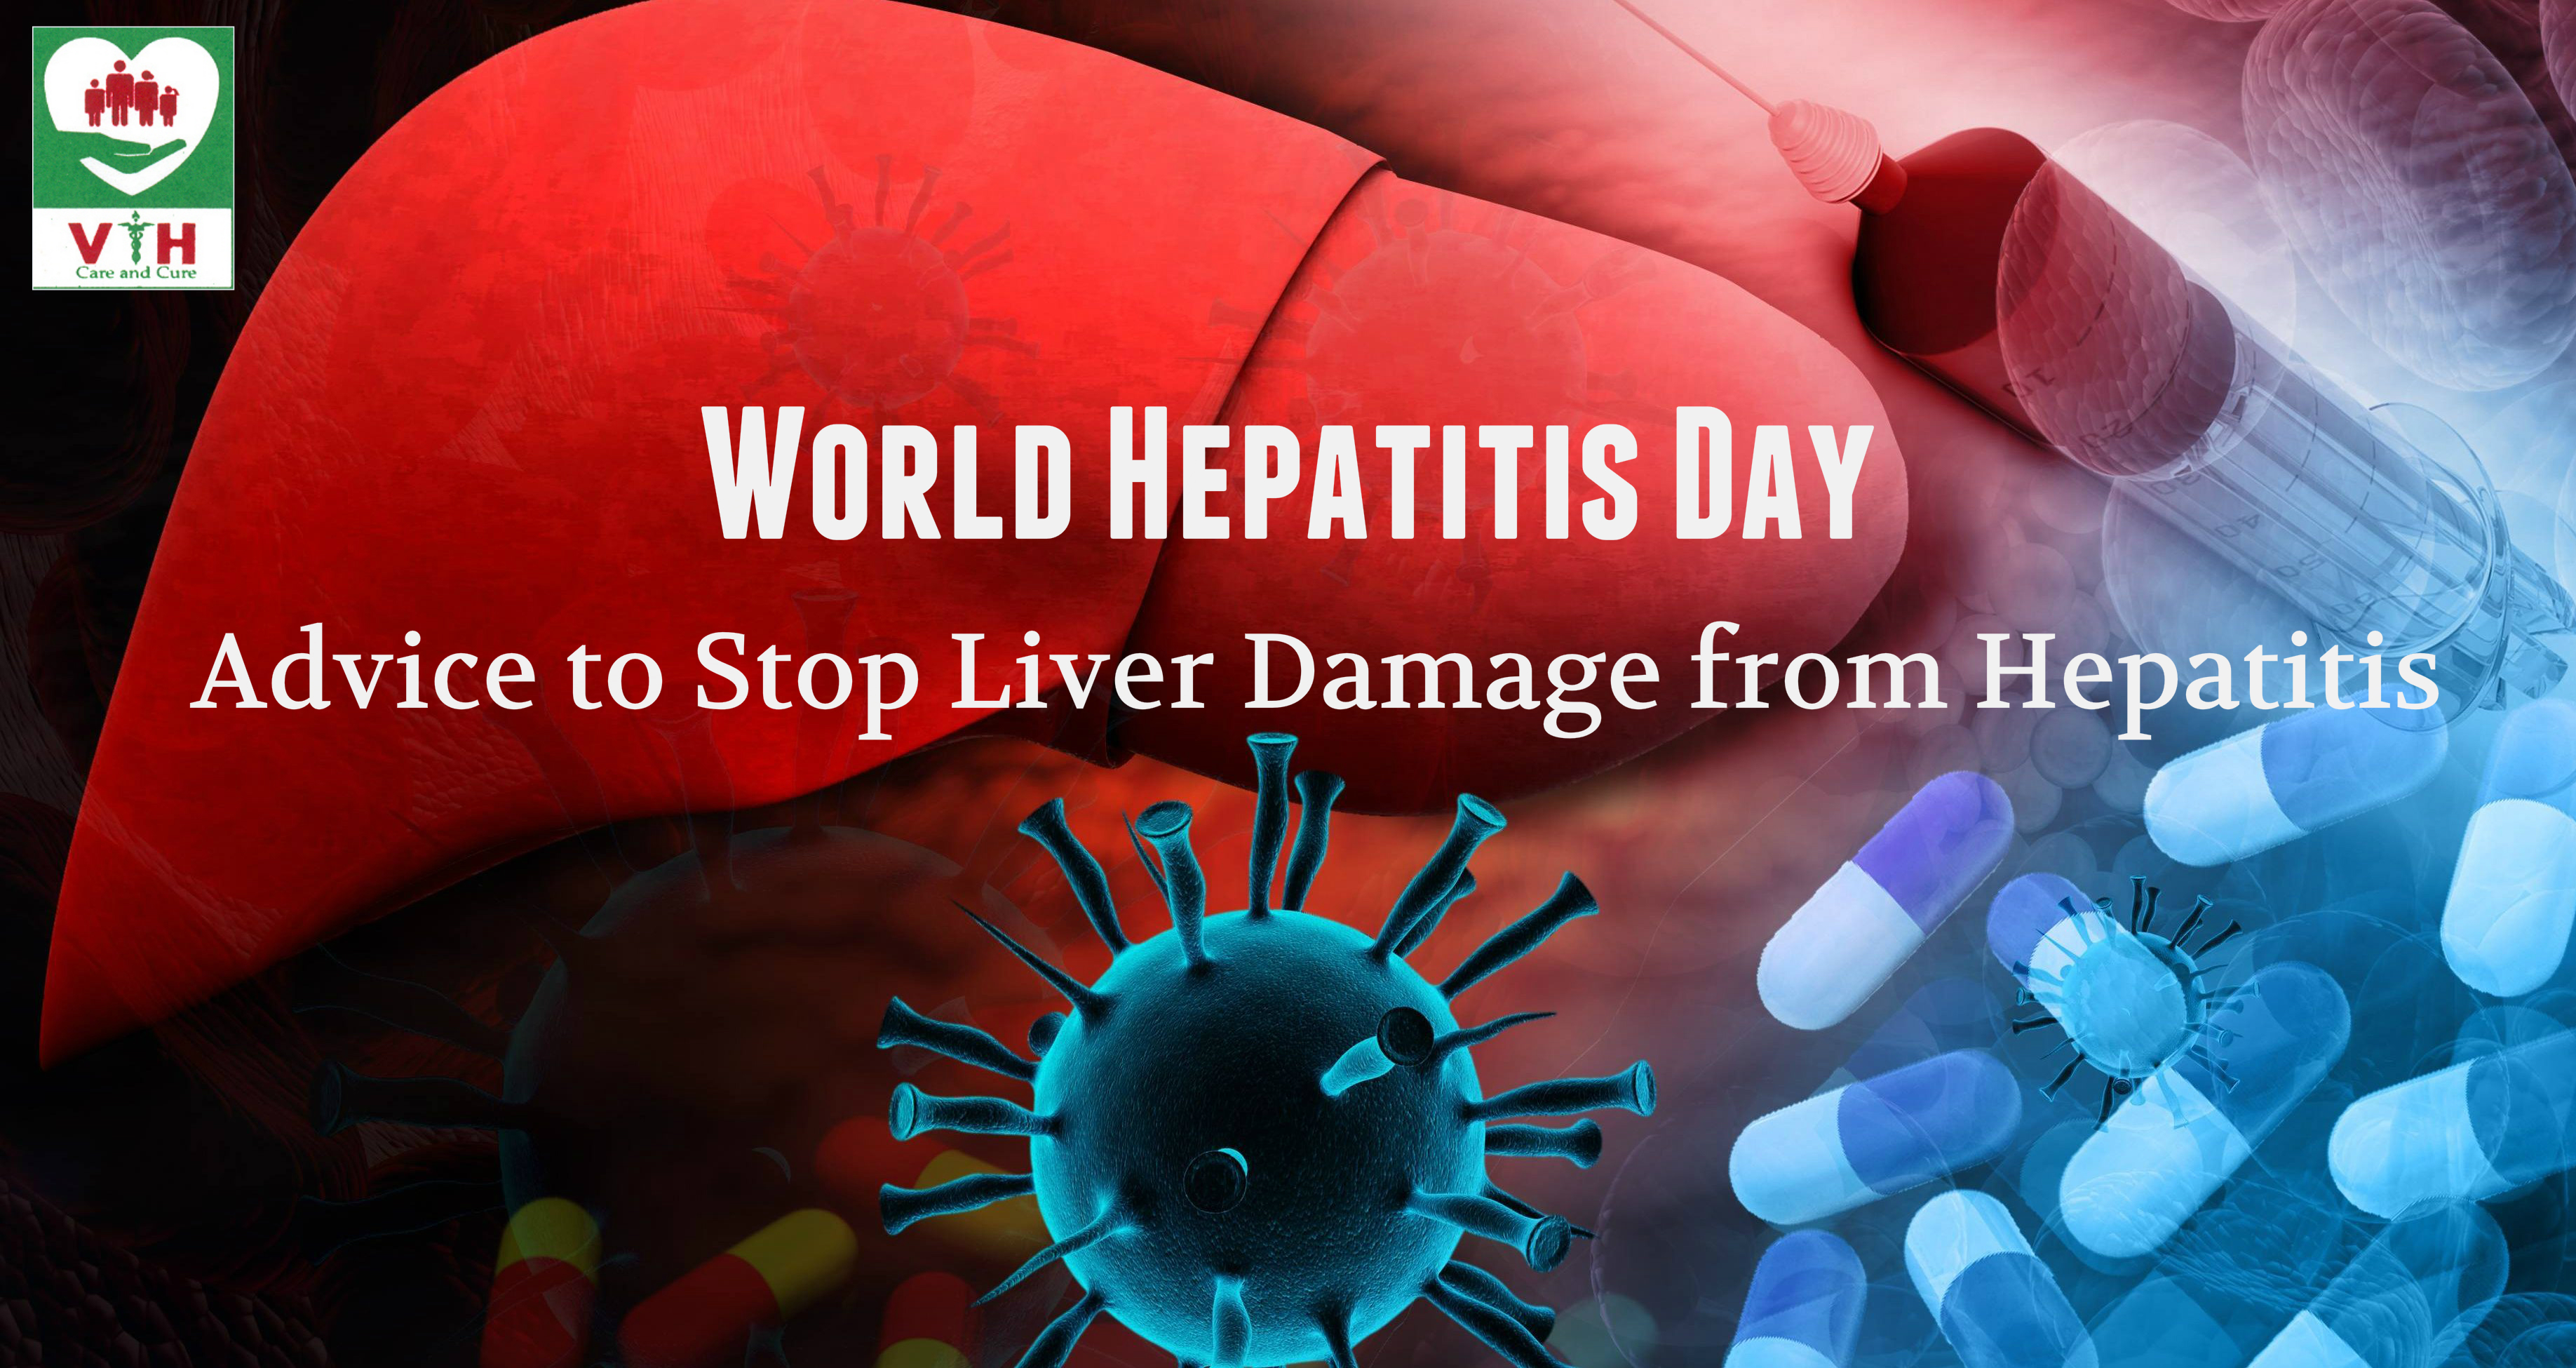 Advice to Stop Liver Damage Hepatits